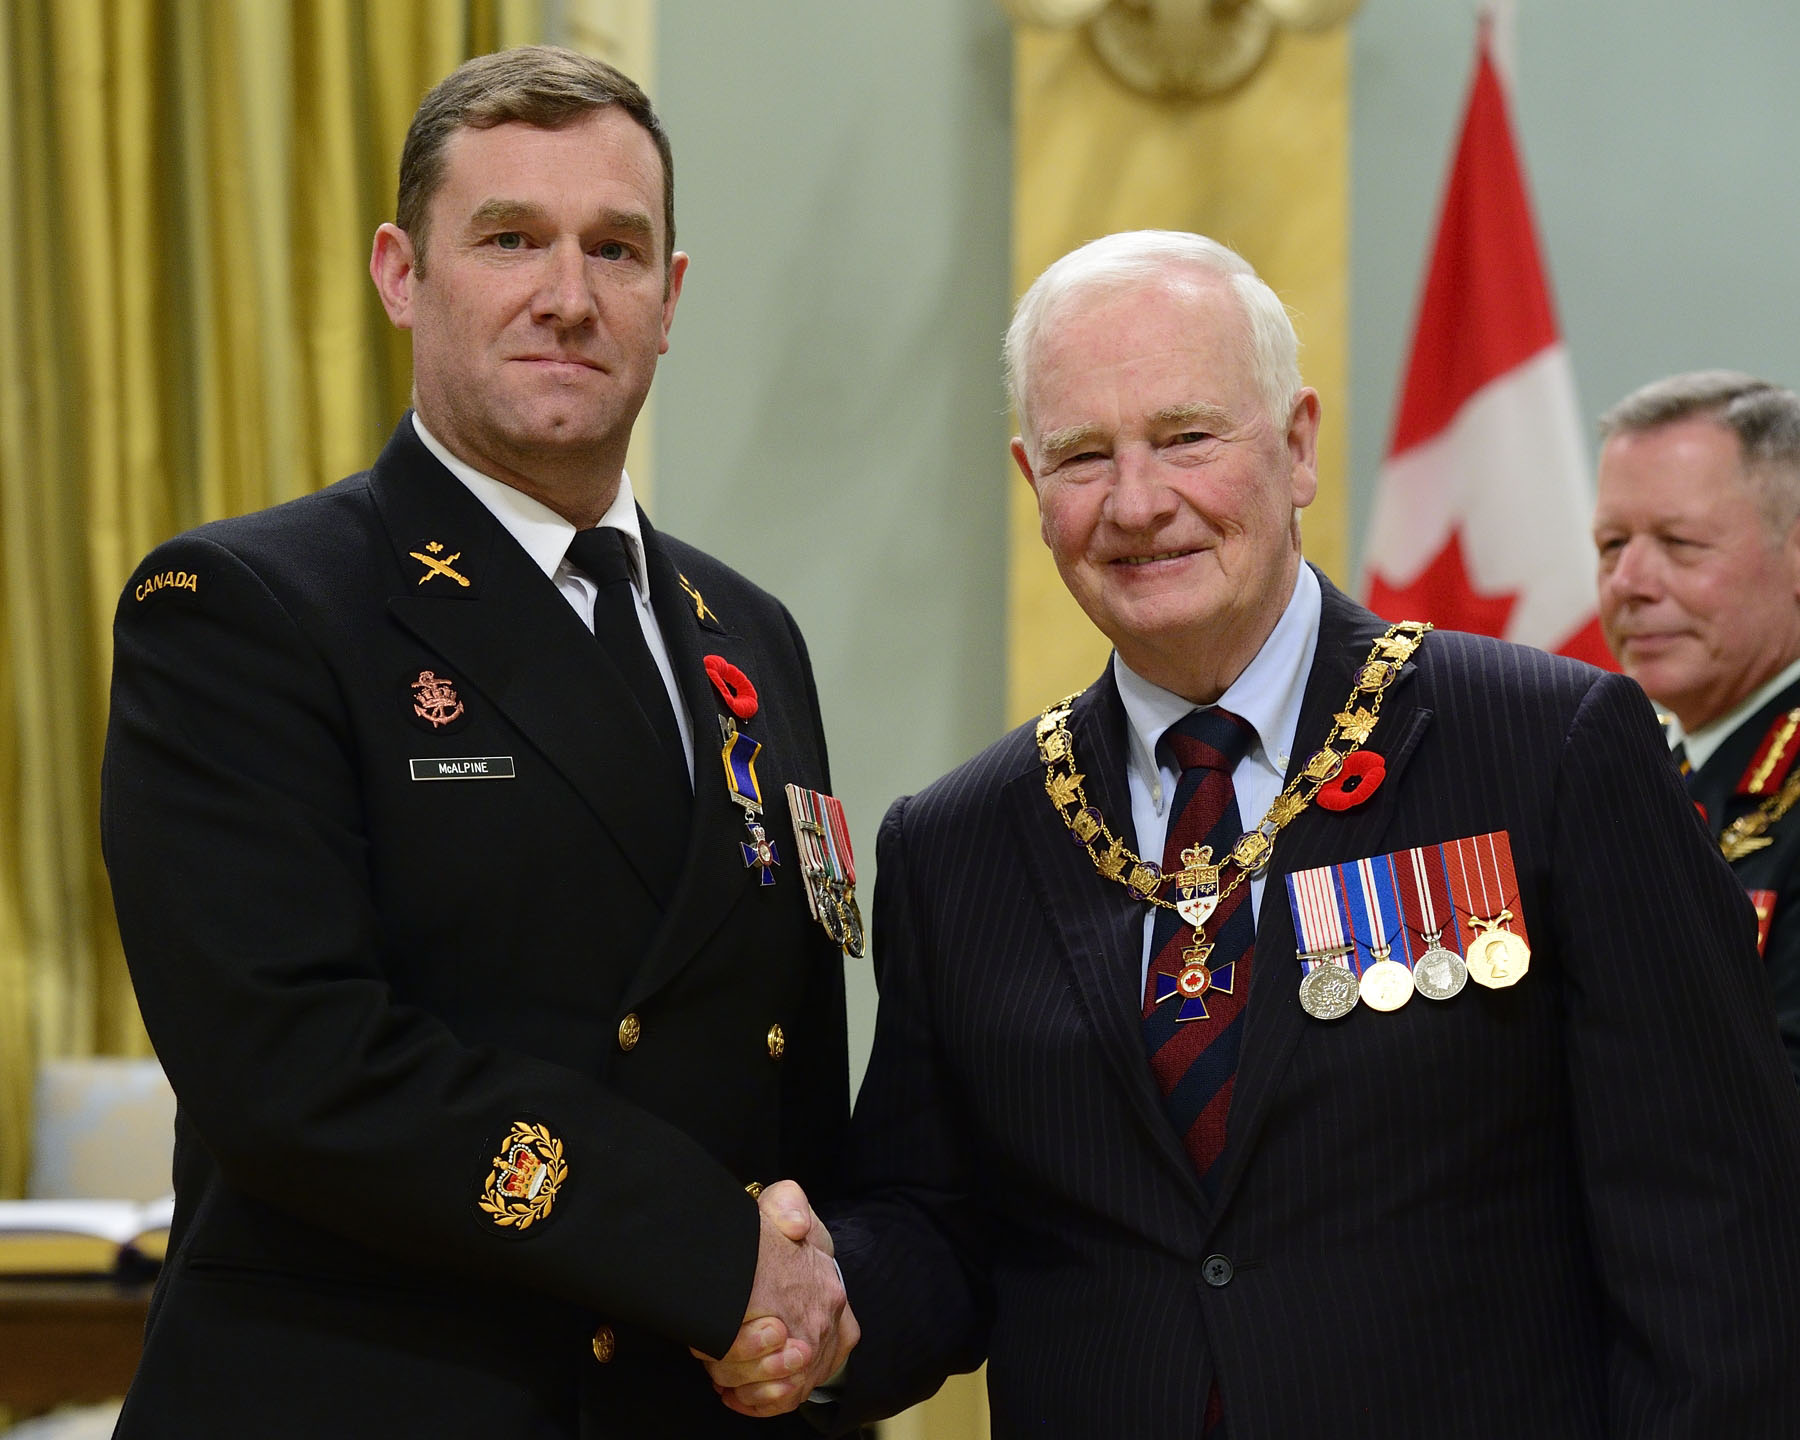 His Excellency presented the Order of Military Merit at the Member level (M.M.M.) to Chief Petty Officer 2nd Class David Kenneth McAlpine, M.M.M., C.D., Canadian Forces Fleet School Esquimalt, Victoria, British Columbia.